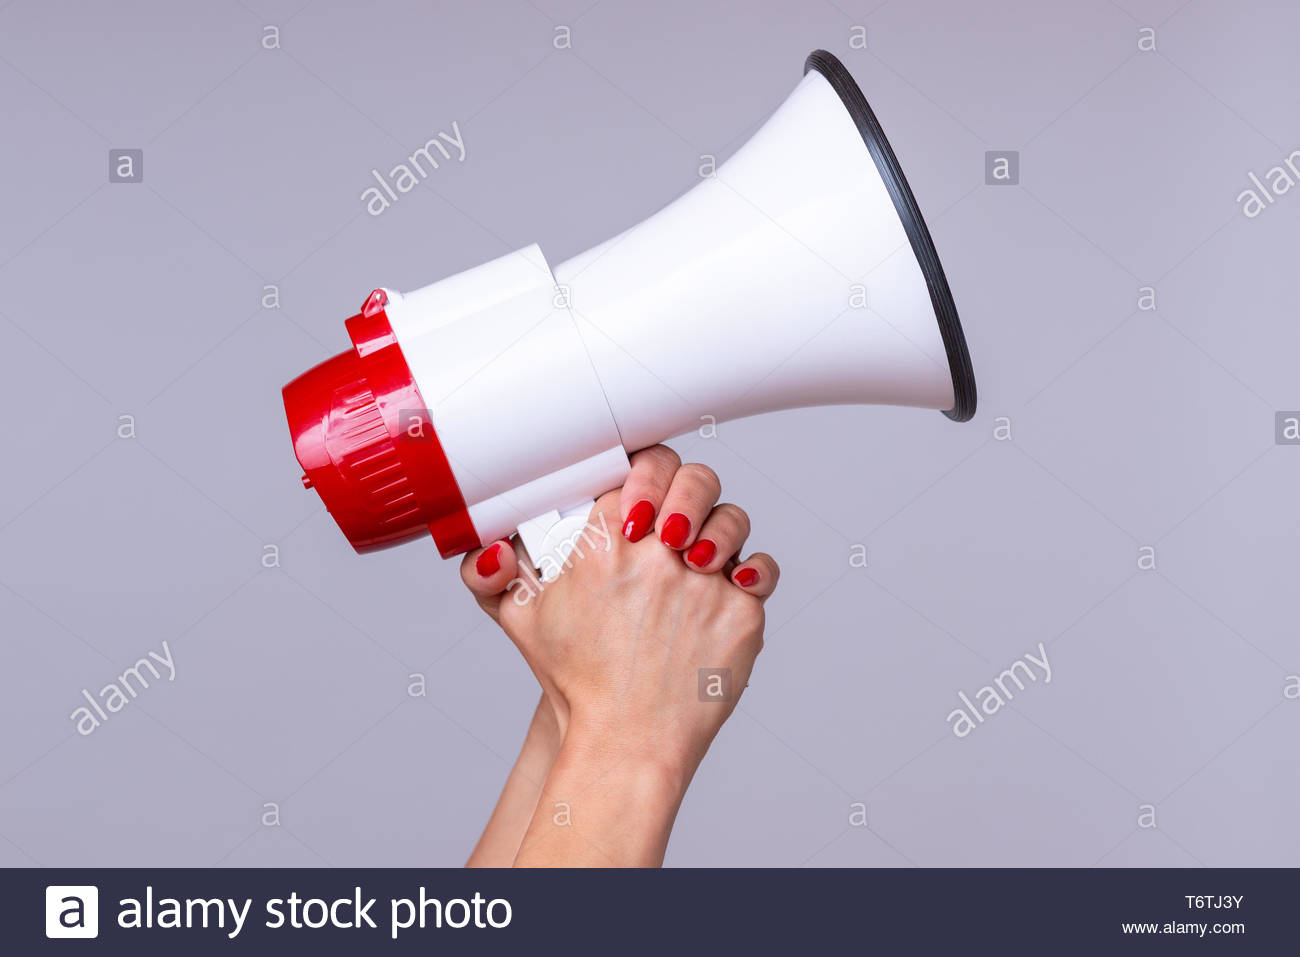 Woman holding up a loud hailer or megaphone - Stock Image